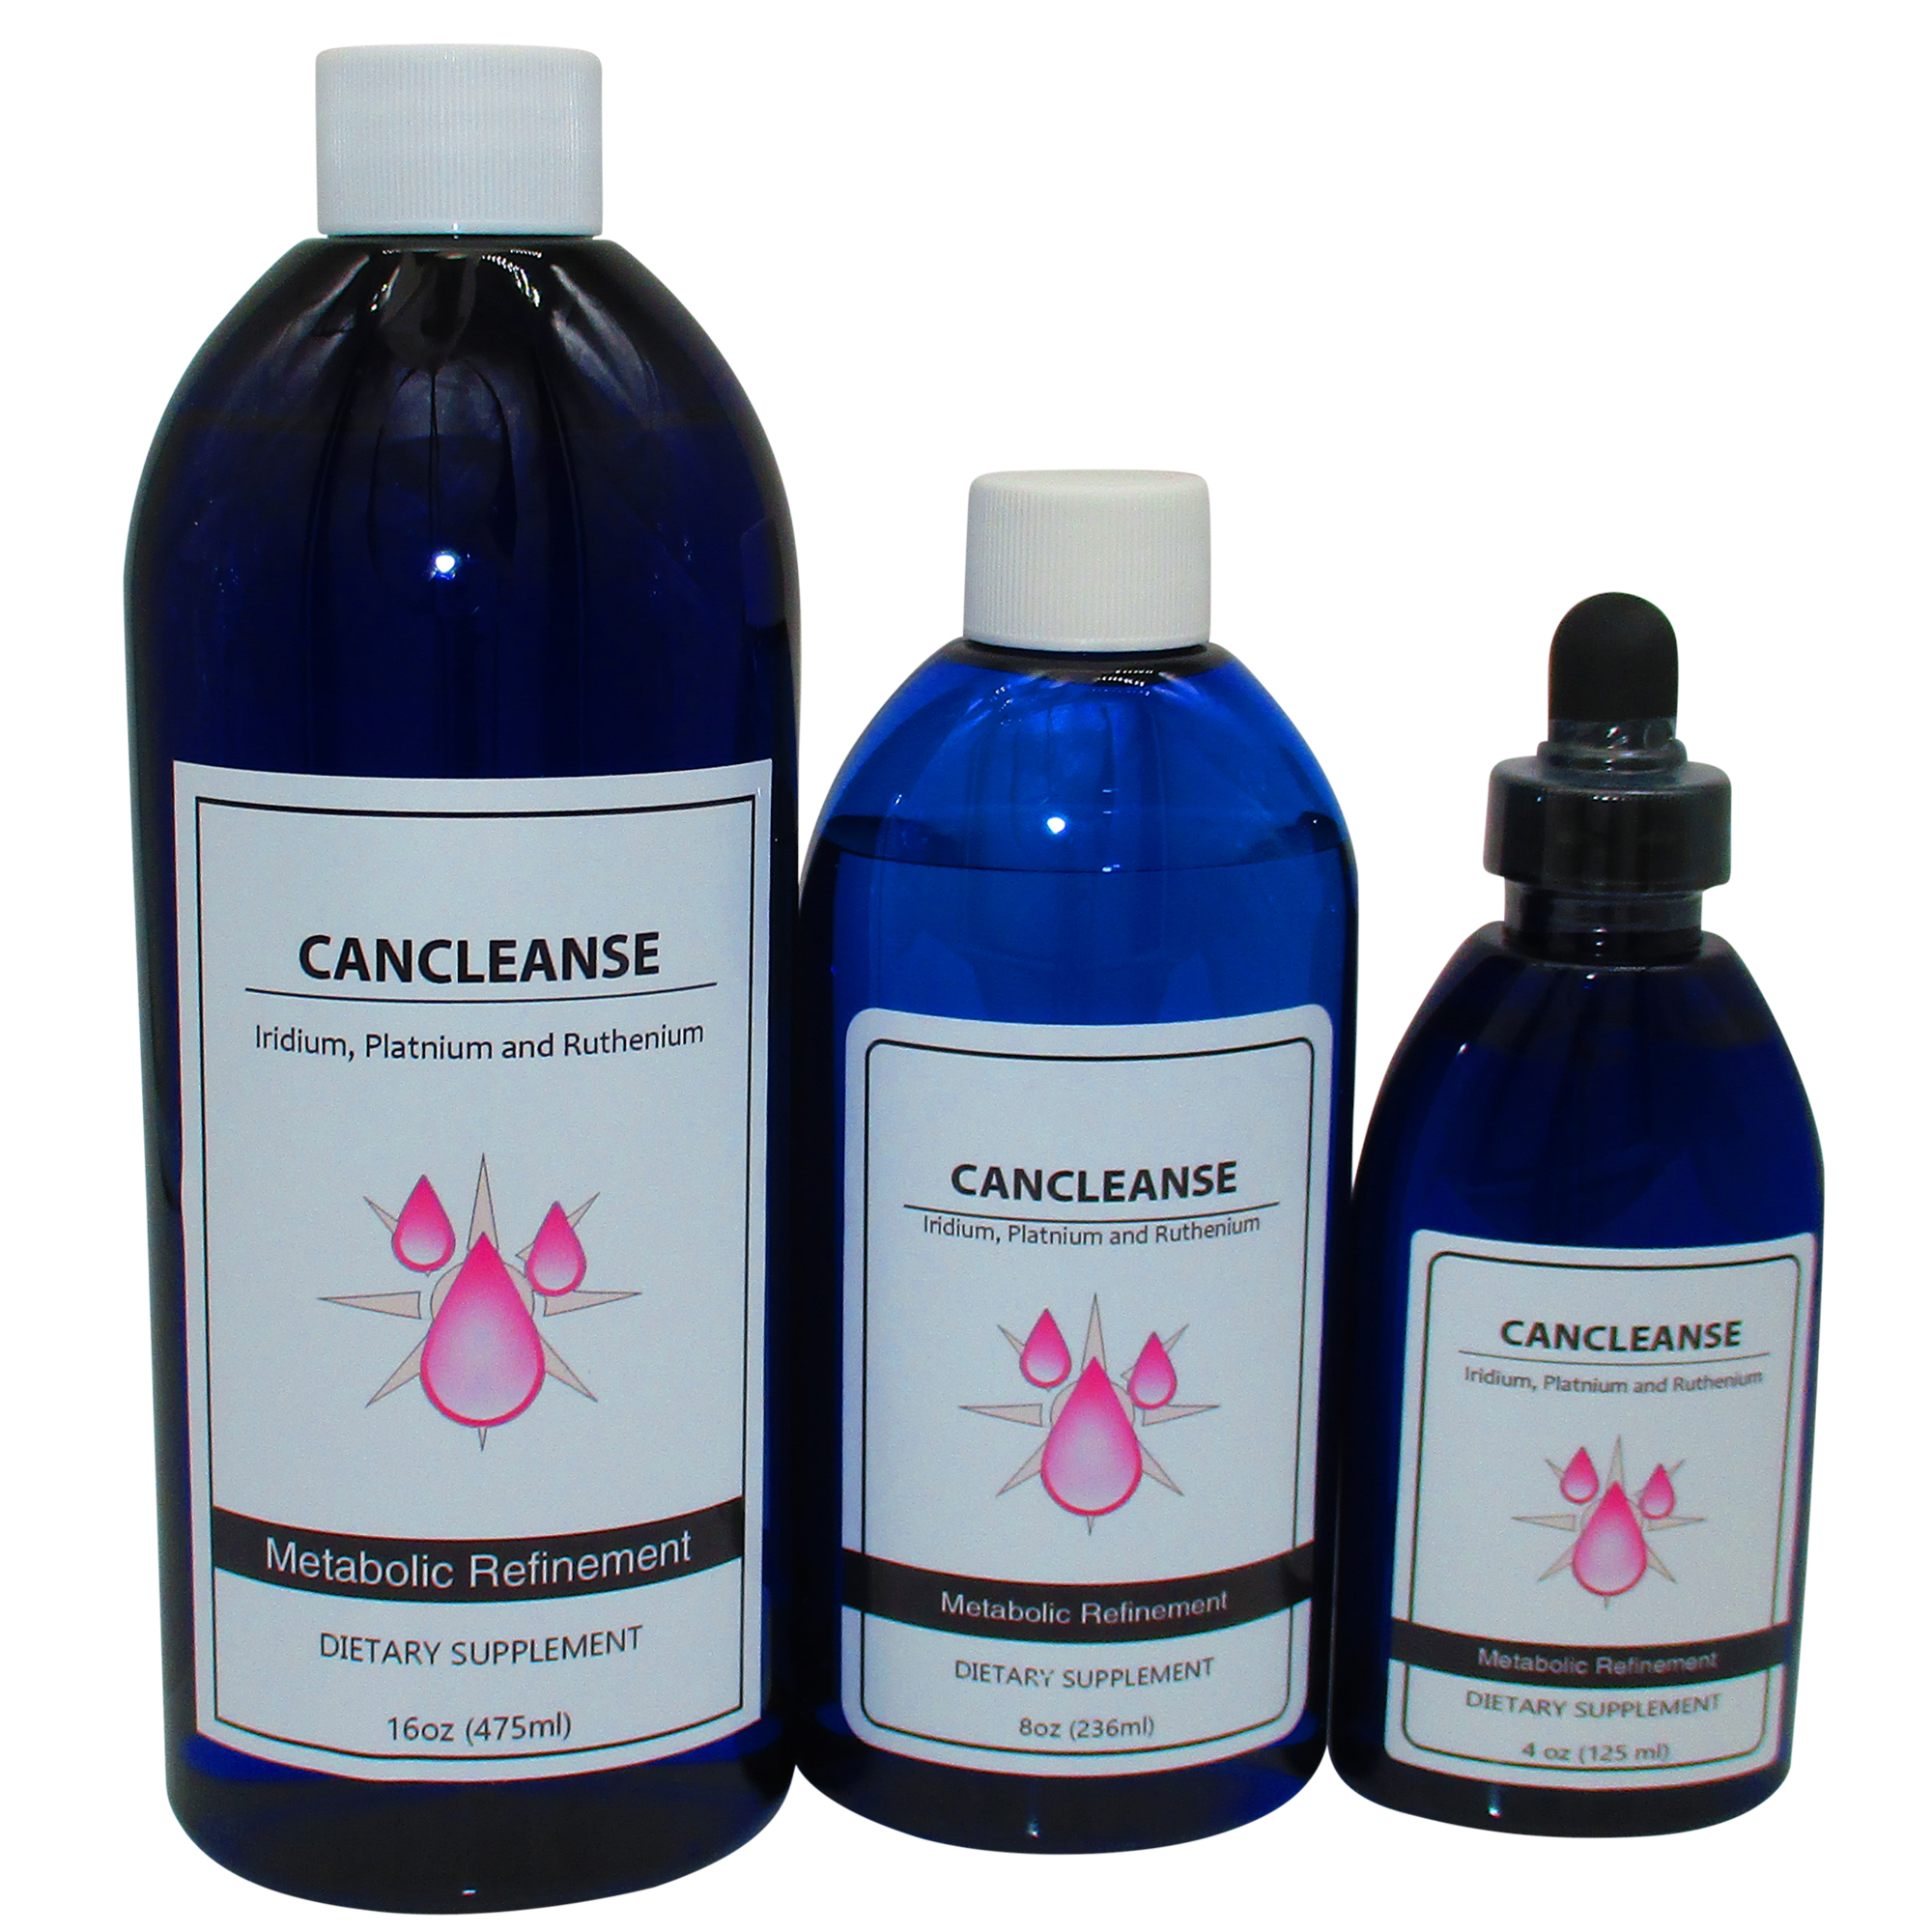 CanCleanse bottles 4, 8 and 16 ounce